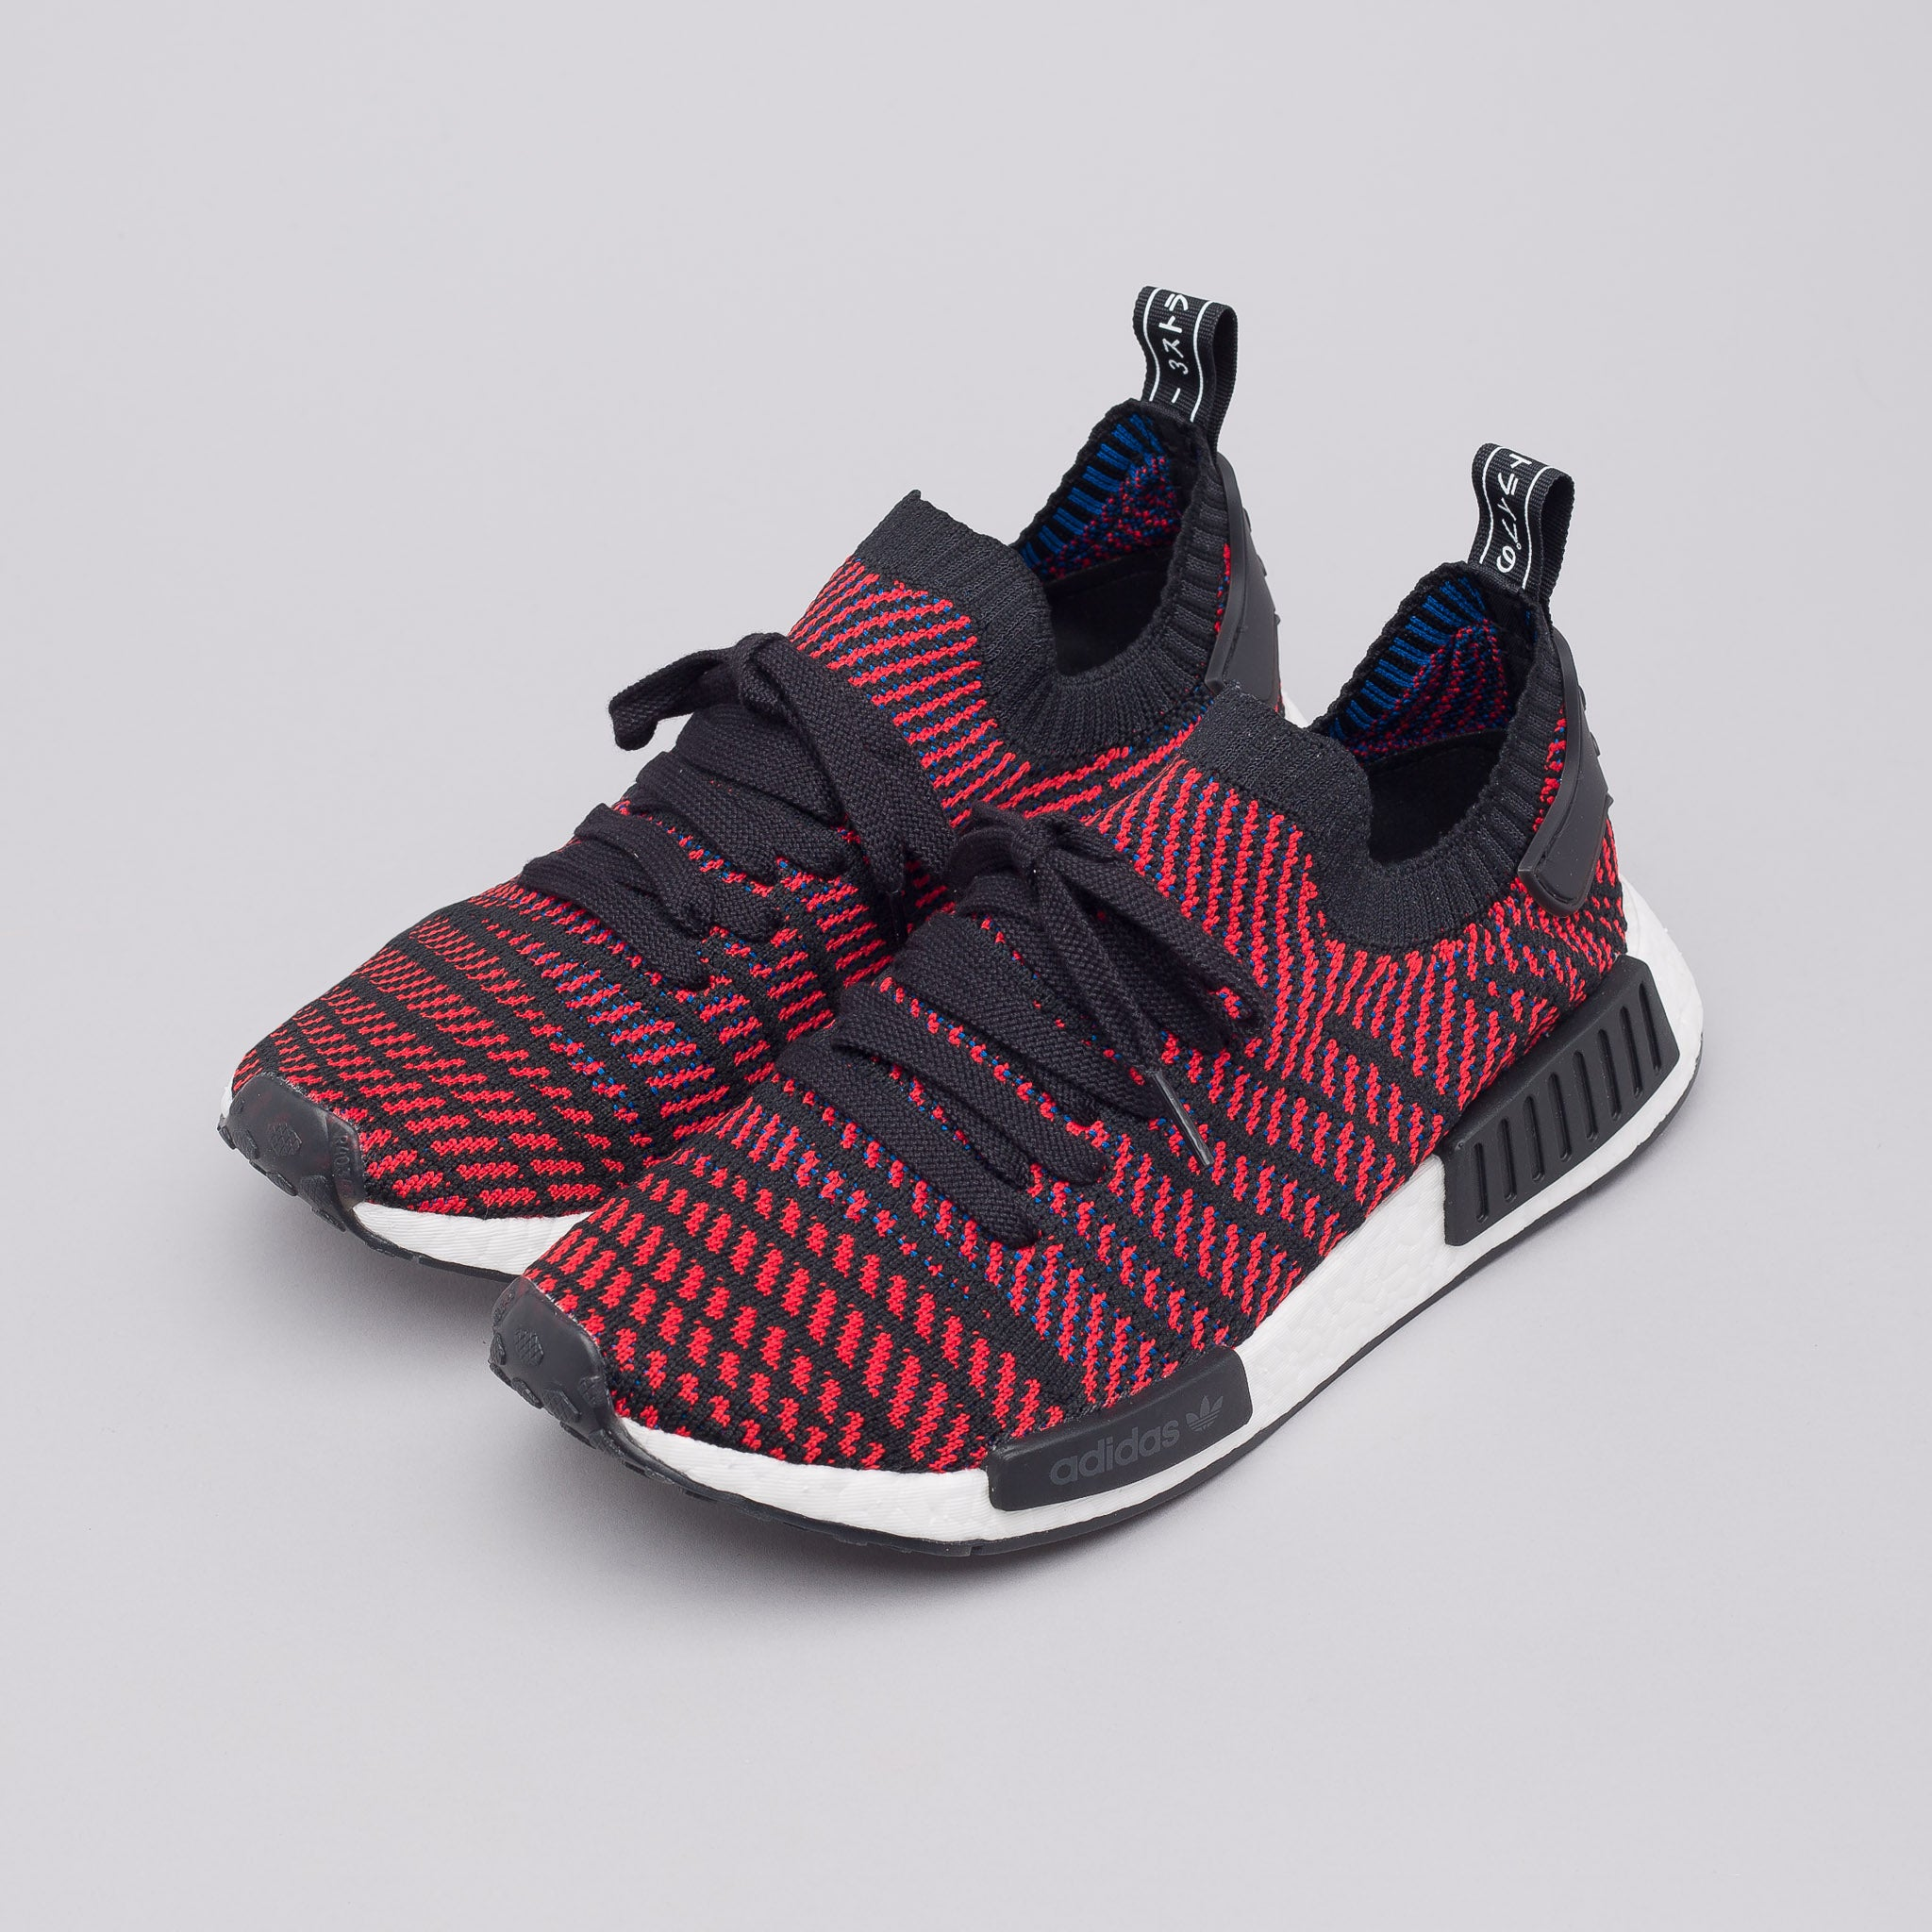 adidas Originals NMD R1 Men's Running Shoes